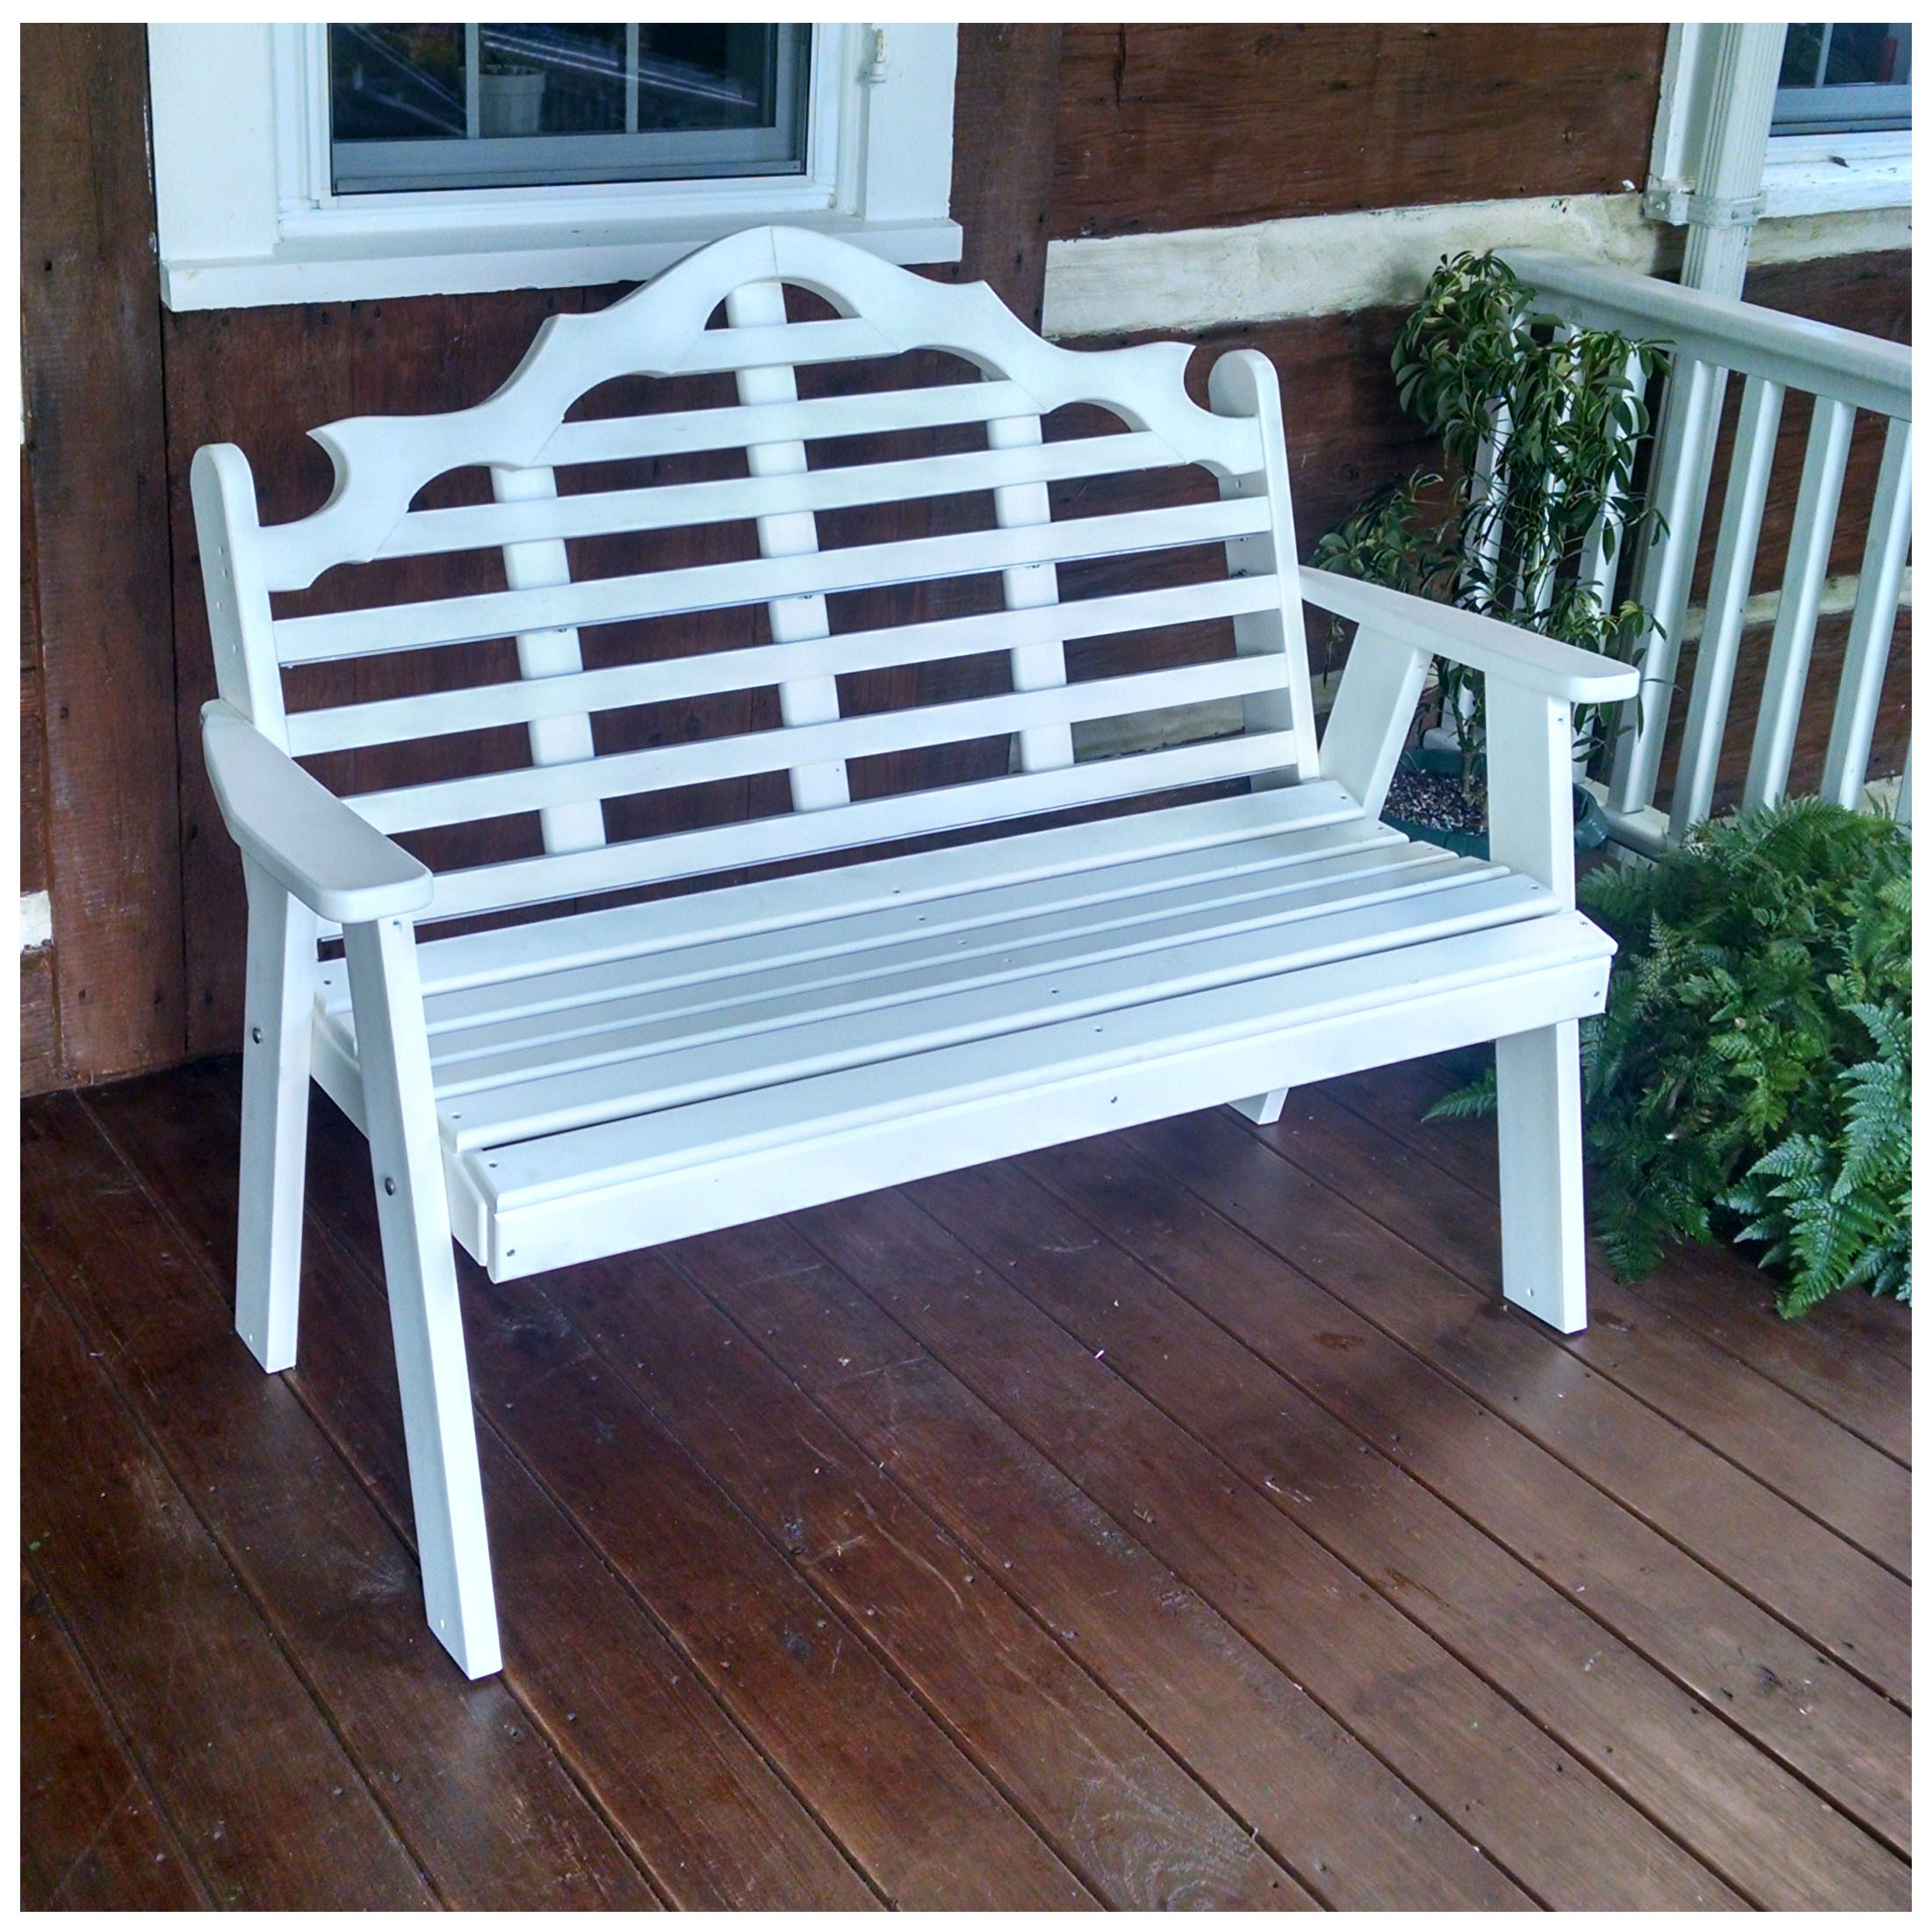 A&L Furniture 4 ft Poly Marlboro Garden Bench